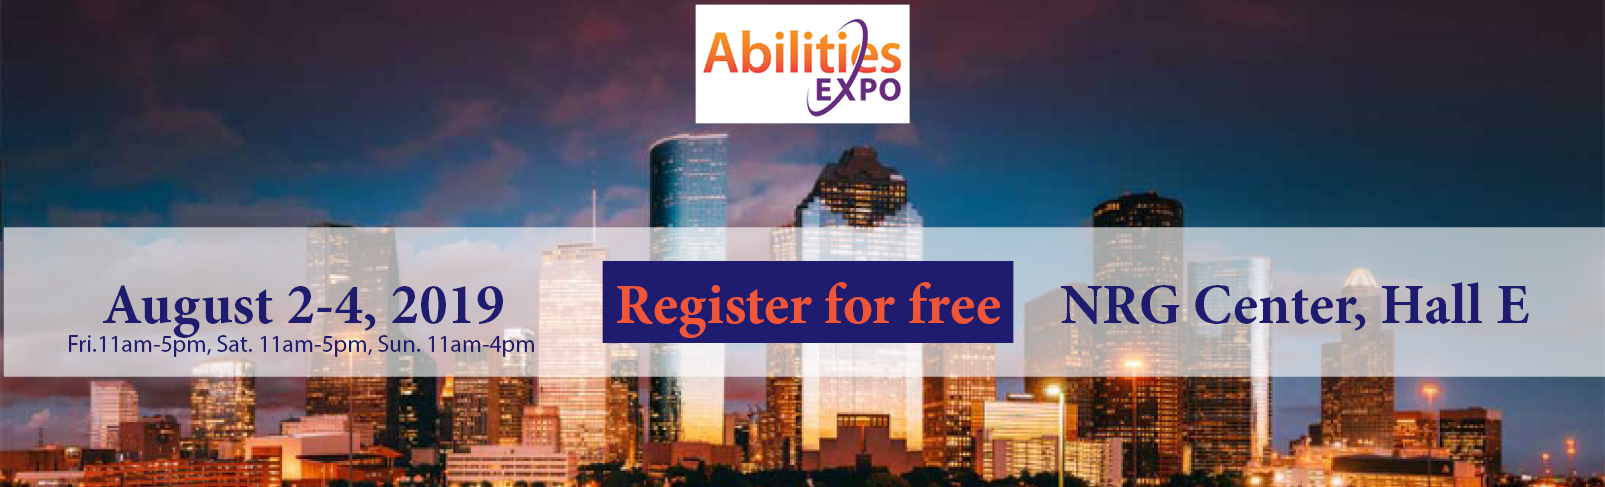 Abilities Expo August 2-4